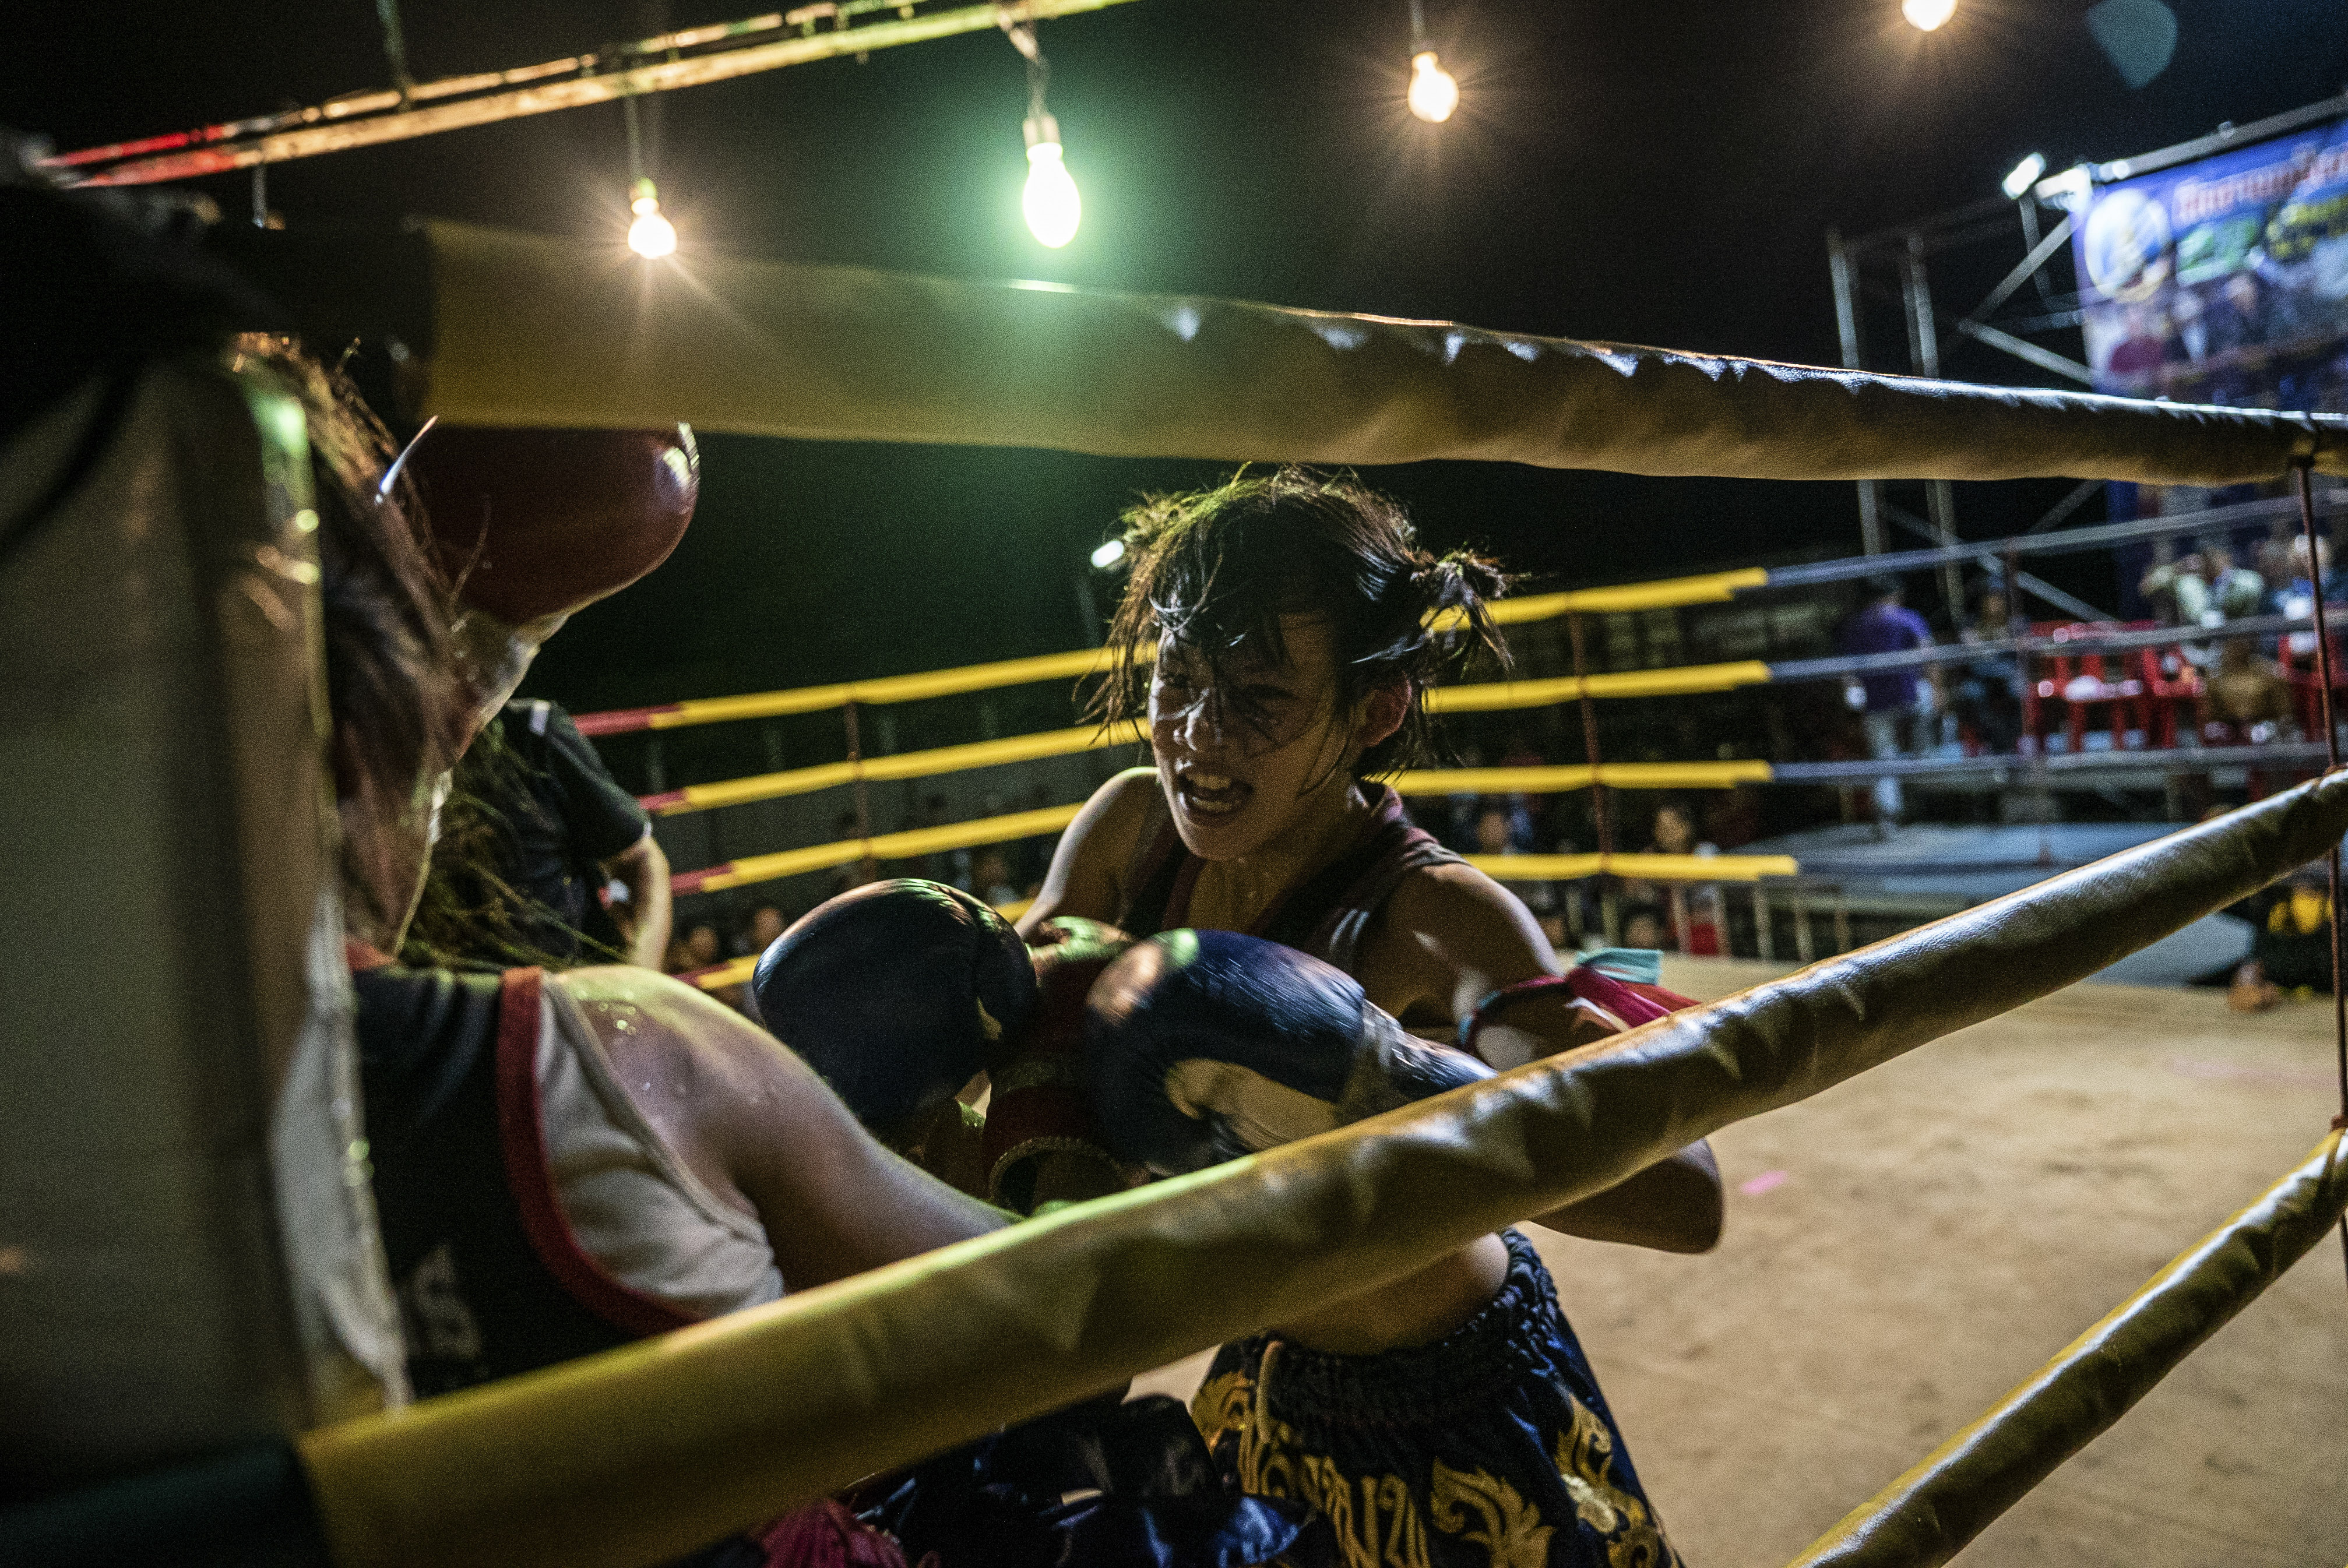 Supattra Inthirat, 12, known as Pancake, during a fight at a small local fighting stage in That Phanom, Thailand.